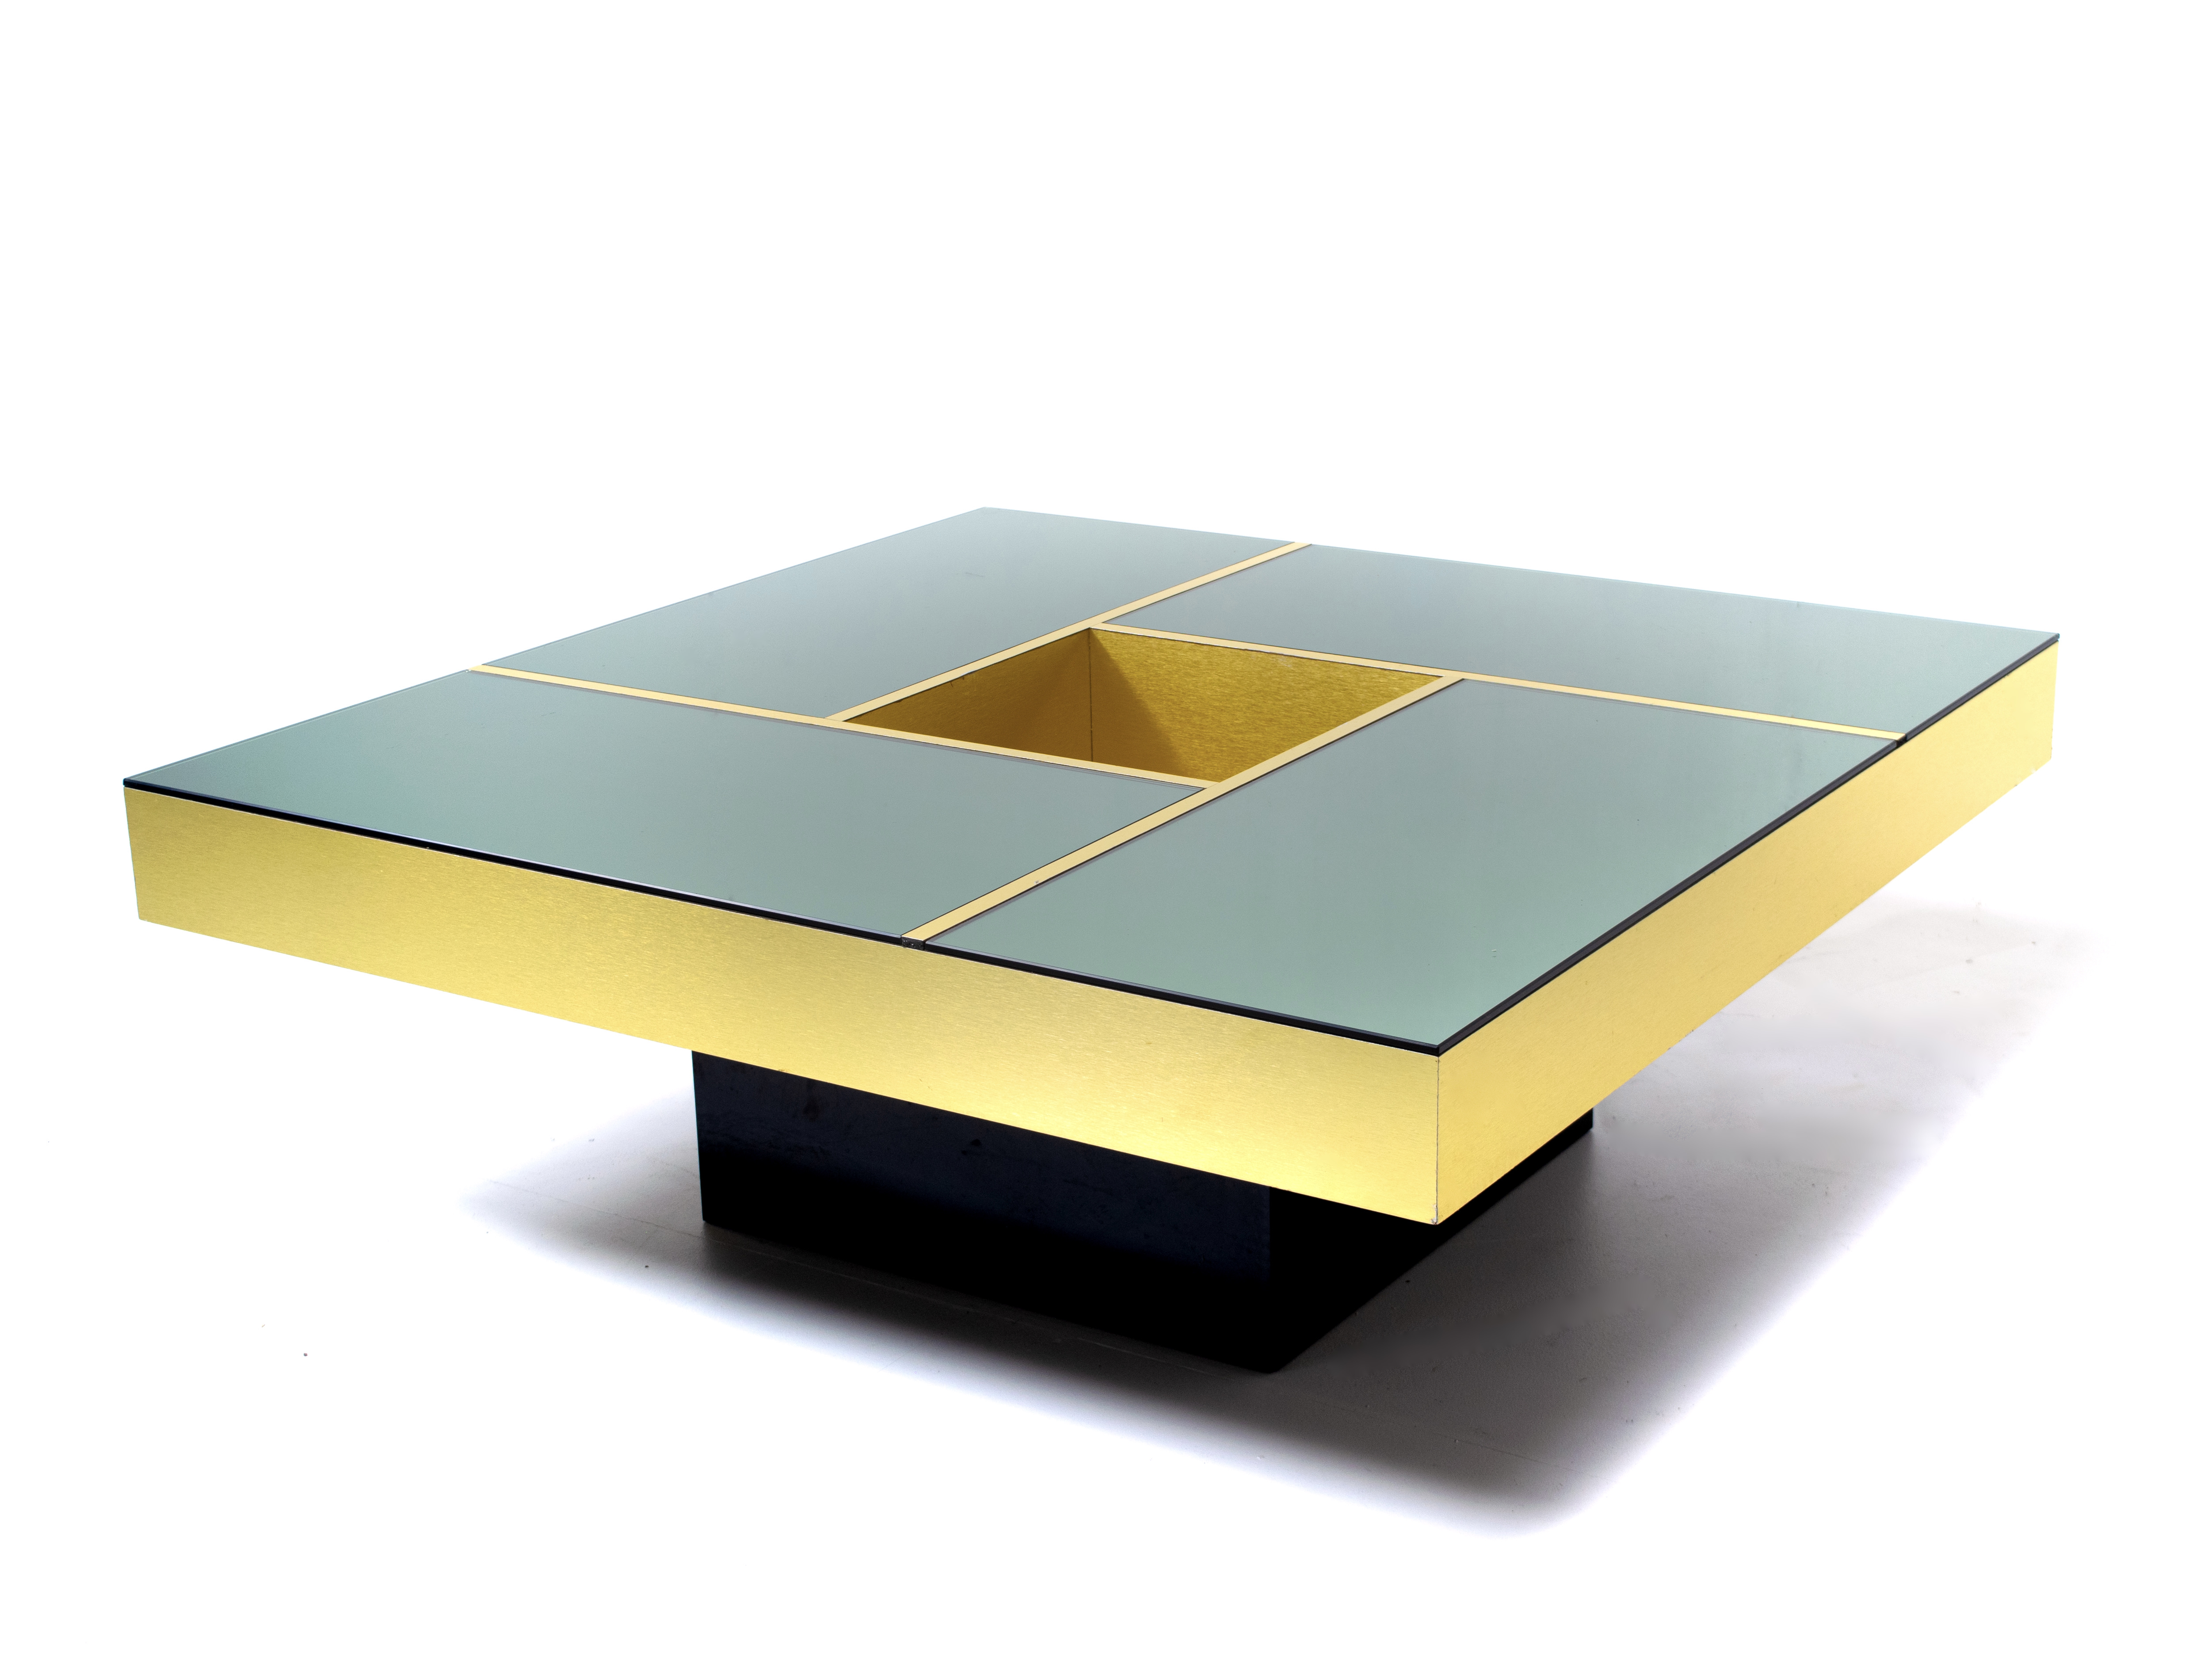 Mirror coffee table 'Shilling' by Giovanni Ausenda & Guido Baldi Grossi, Italy 1970s